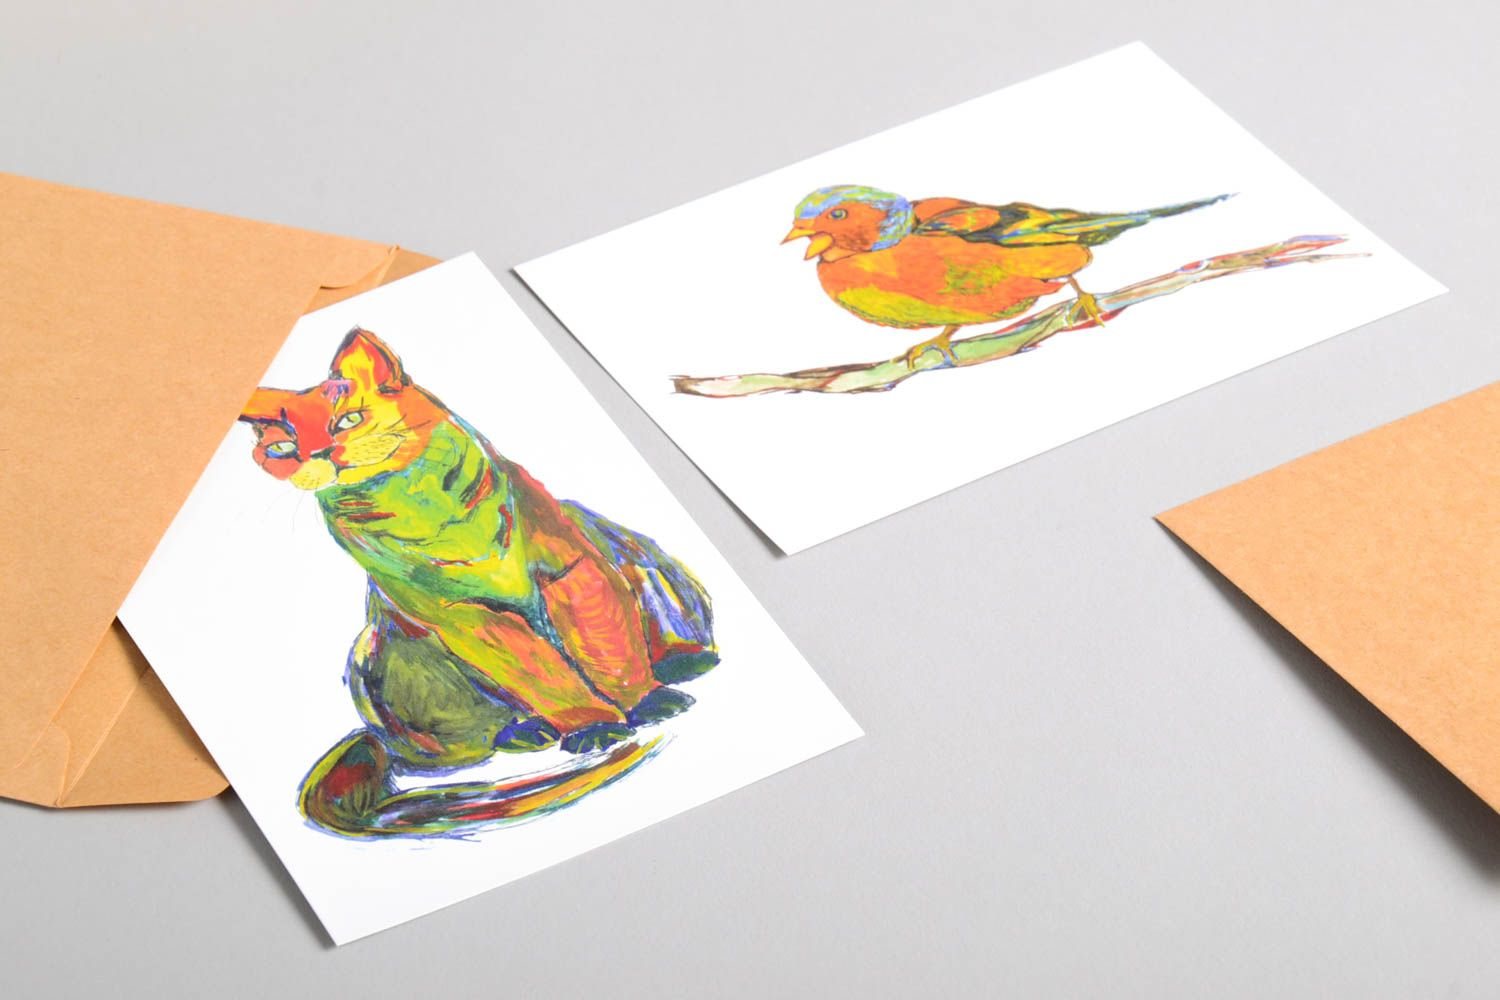 Exclusive greeting card for handmade gift ideas designer cards for signature photo 4